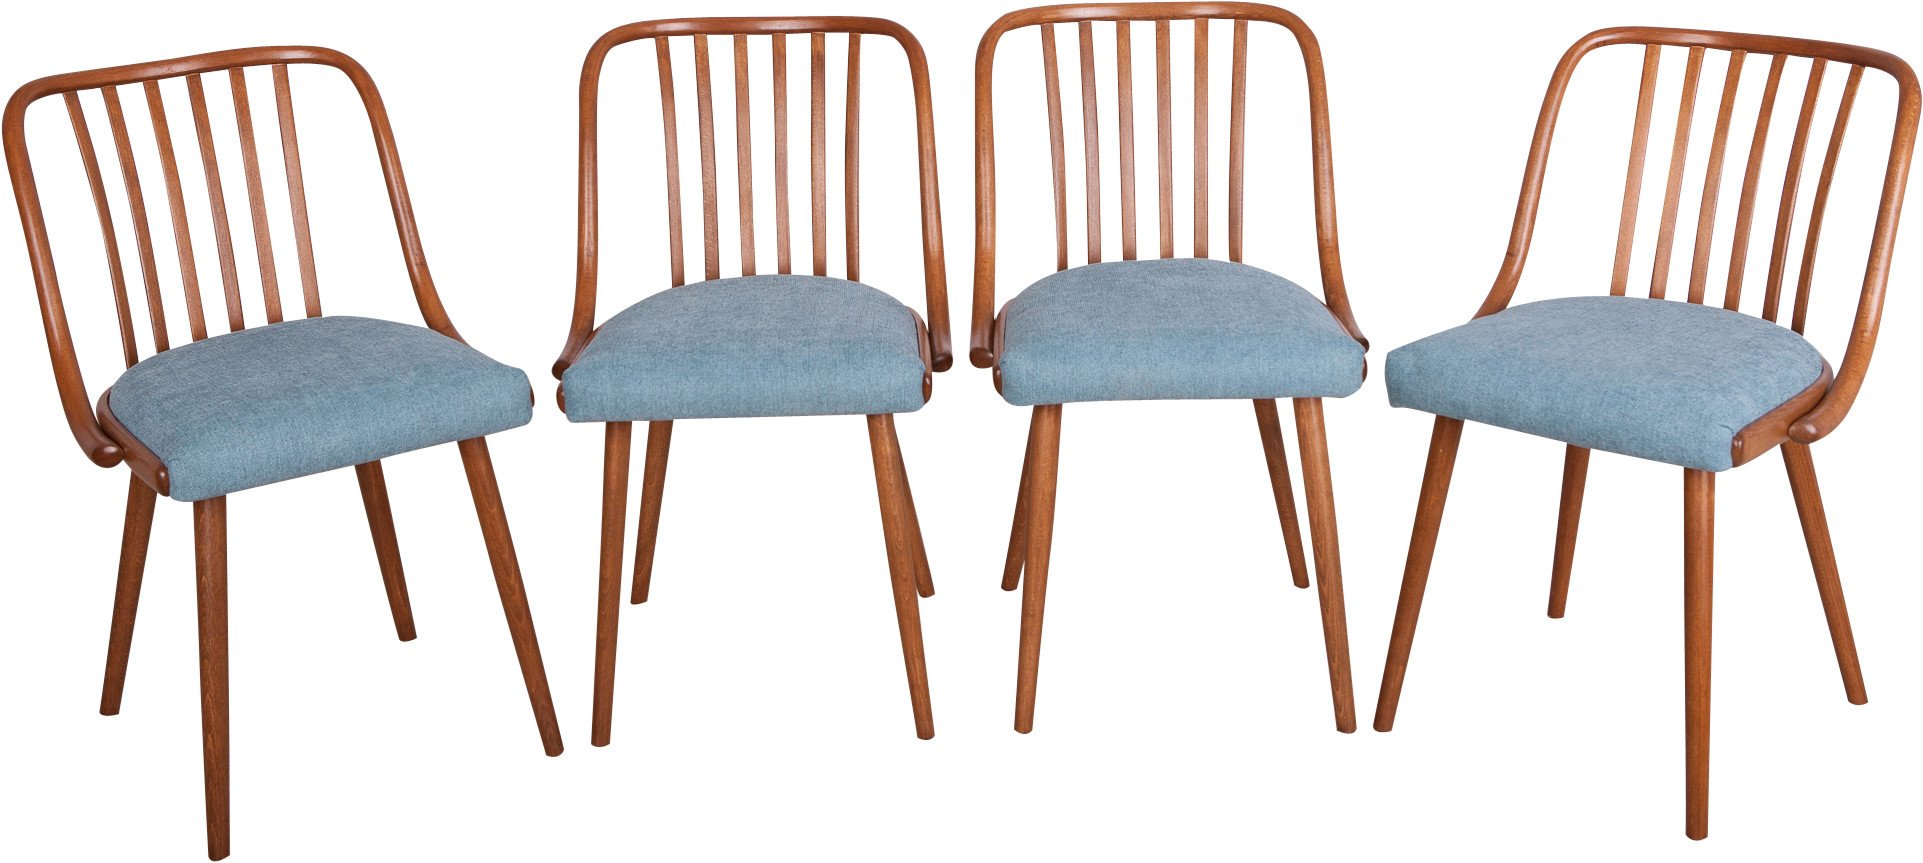 Set of Four Chairs by A. Suman for TON, Czechoslovakia, 1960s